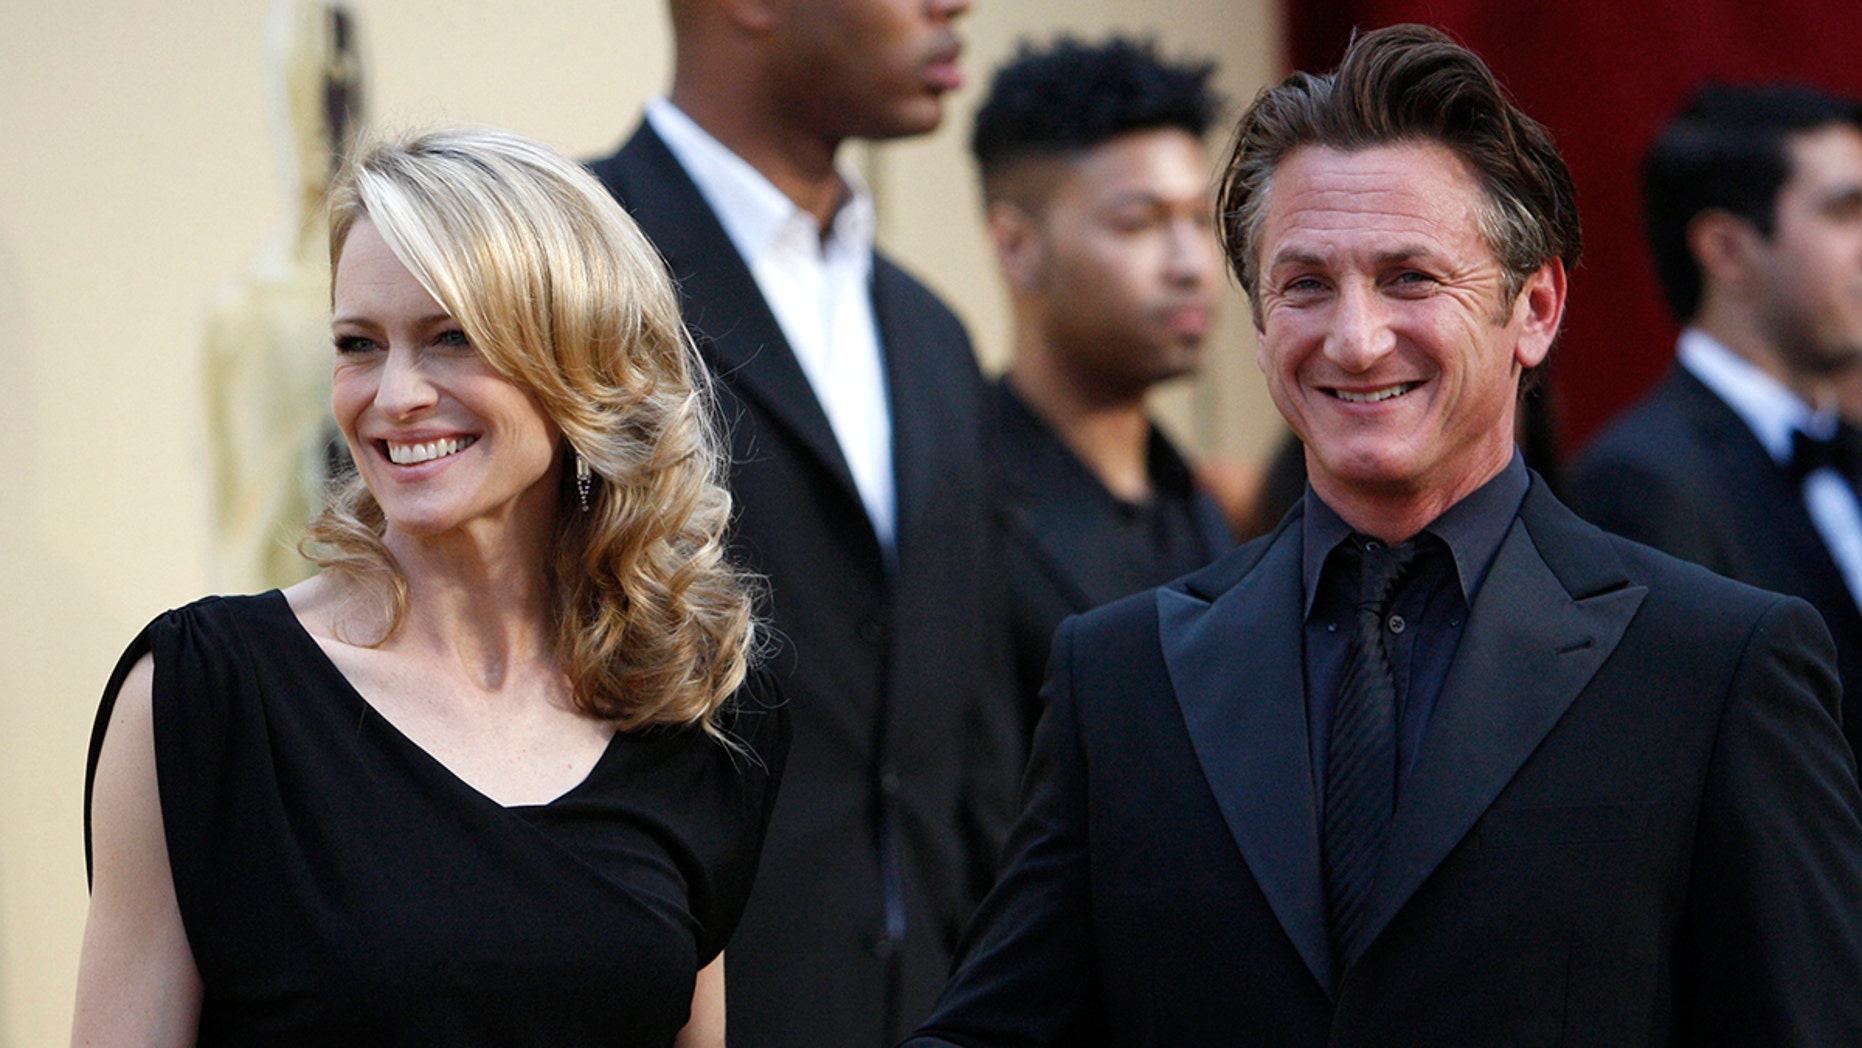 """Best actor nominee Sean Penn from the film """"Milk"""" and his wife Robin Wright Penn pause on the red carpet as they arrive at the 81st Academy Awards in Hollywood, California February 22, 2009. Sean Penn is dressed in Giorgio Armani and Robin Wright Penn, dressed in Monique Lhuillier. REUTERS/Mario Anzuoni   (UNITED STATES) (OSCARS-ARRIVALS) - GM1E52N0PKZ01"""